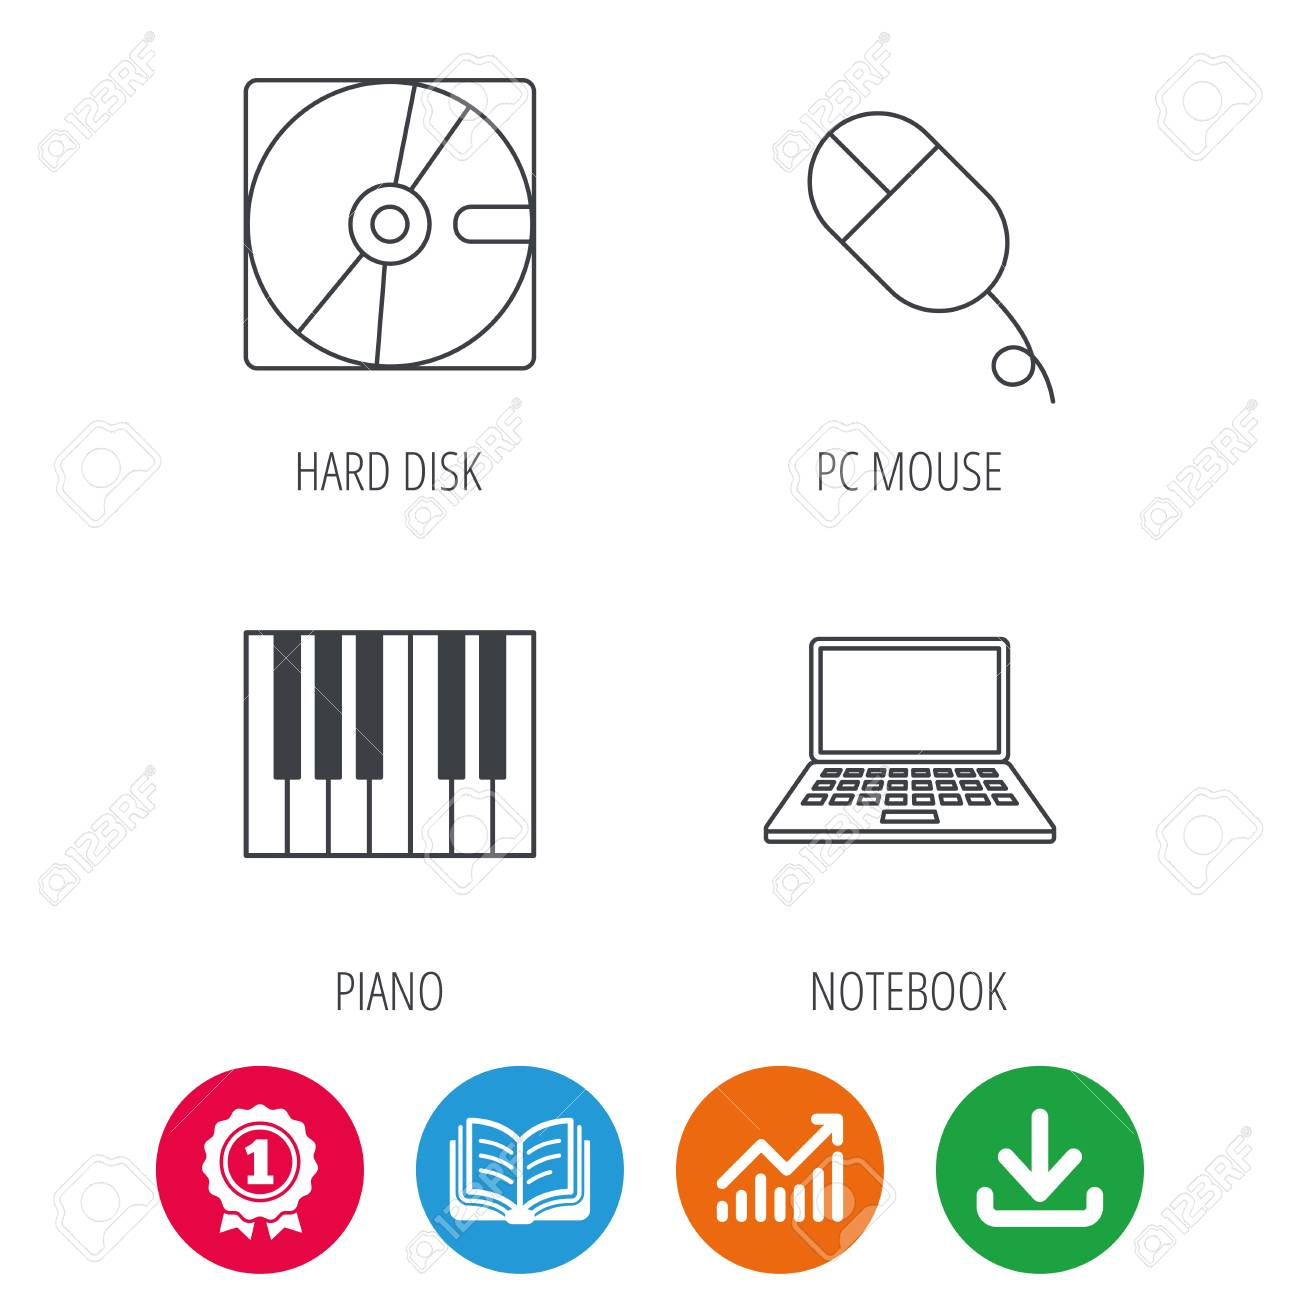 Hard disk, pc mouse and notebook laptop icons  Piano linear sign